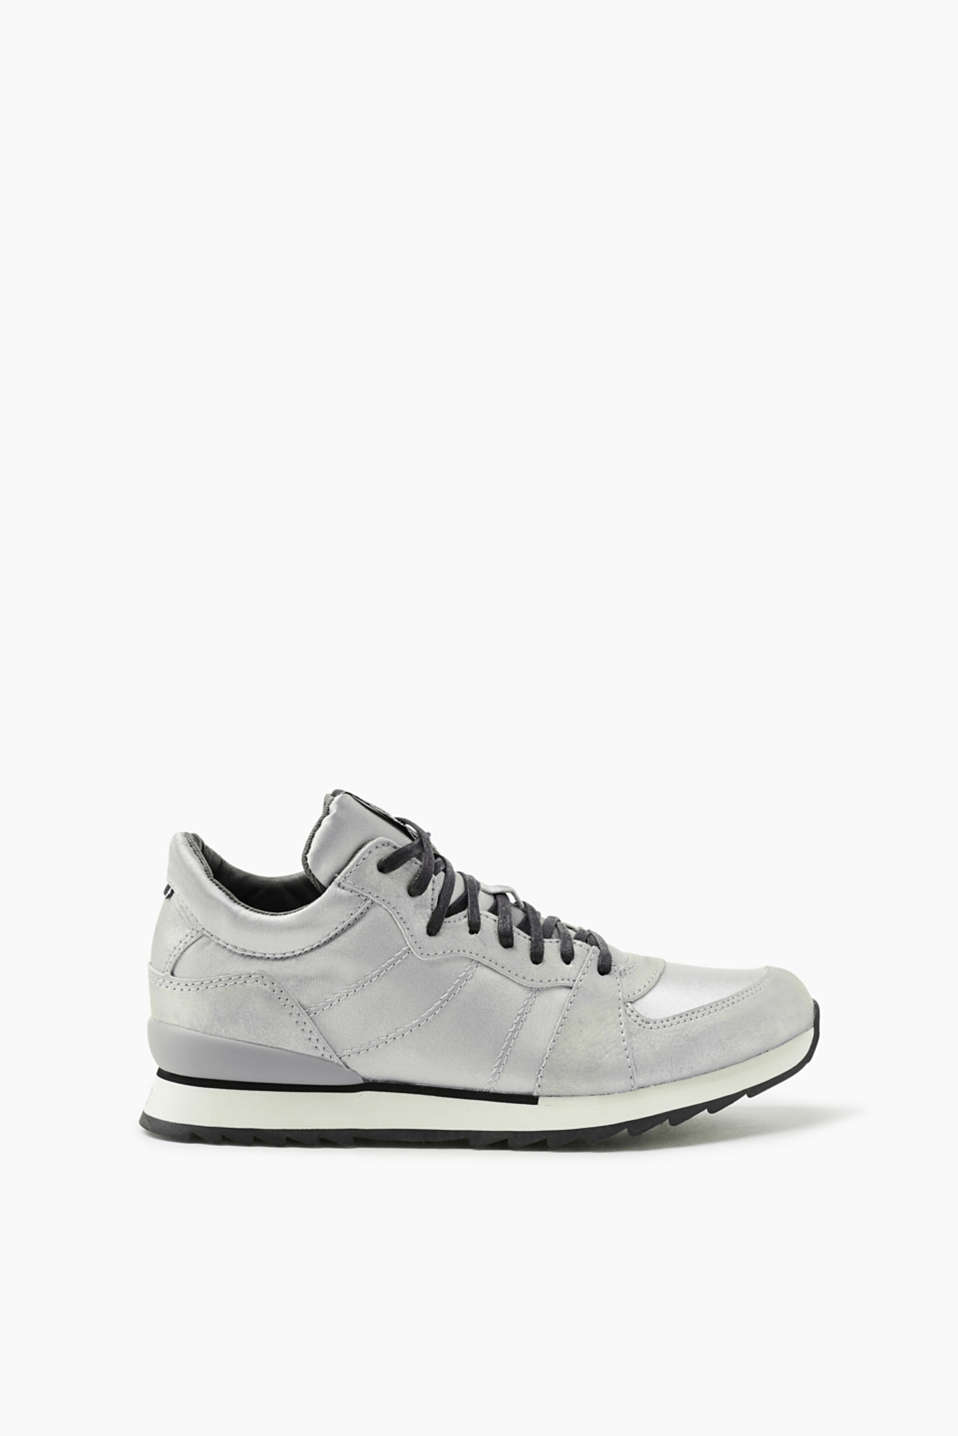 Esprit - Cool mixed material metallic trainers